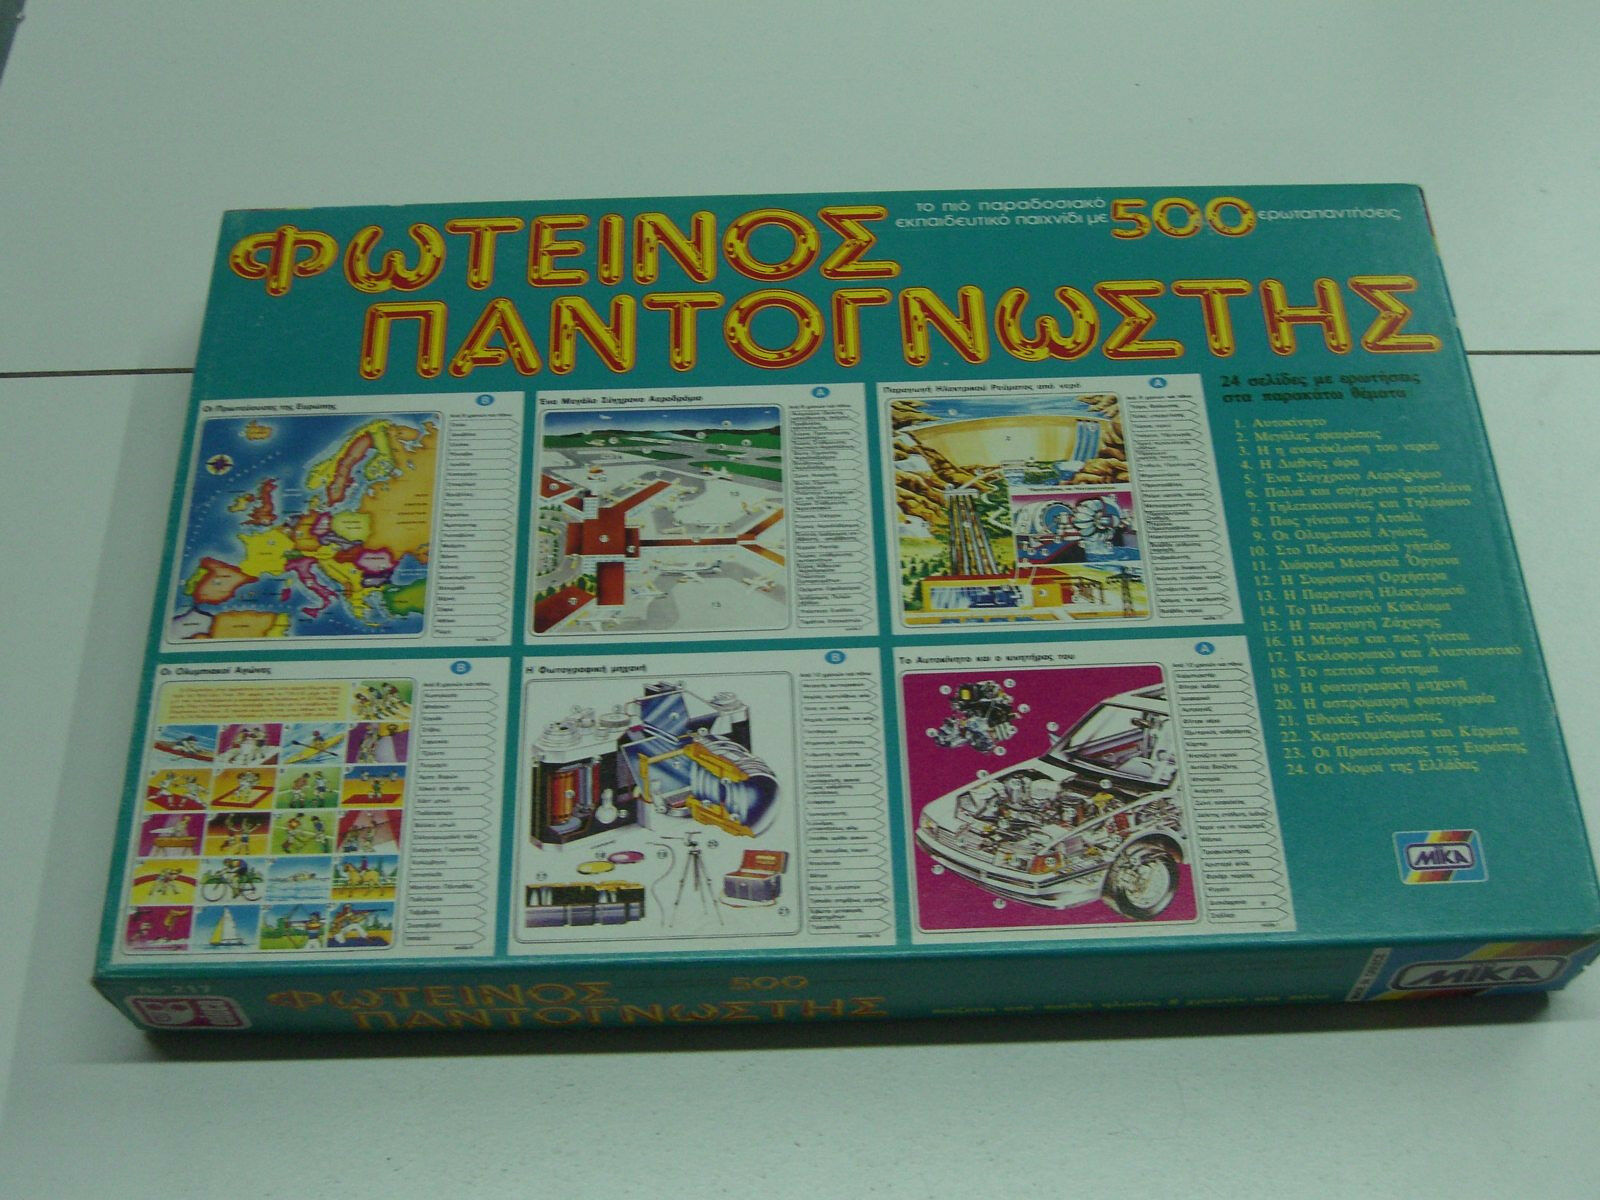 80's Greek Board Game FWTEINOS PANTOGNWSTIS FOTINOS RARE BY MIKA   217